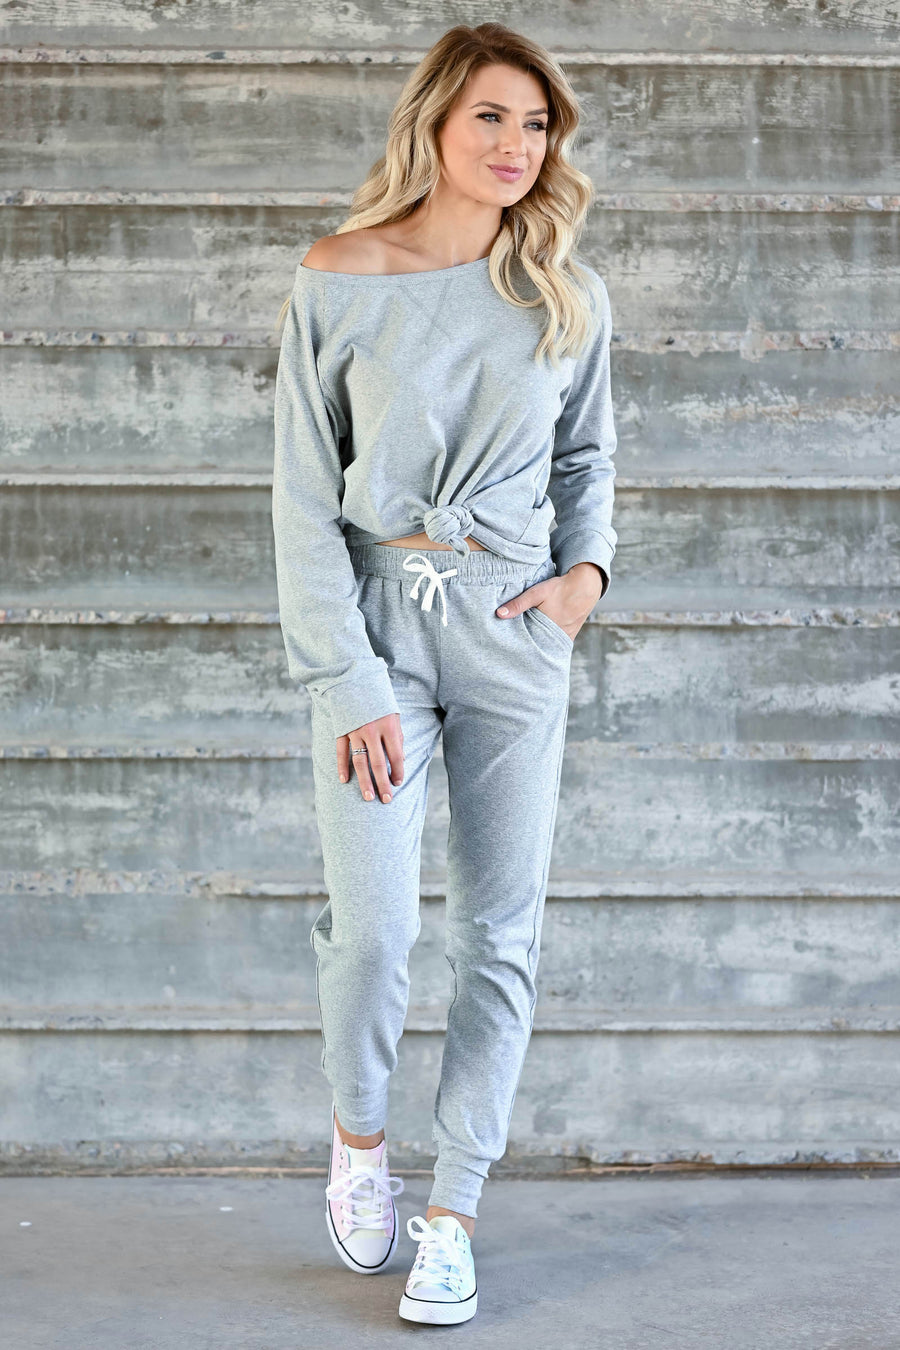 CBRAND At Peace Joggers - Heather Grey womens trendy knit joggers with elastic drawstring closet candy sitting